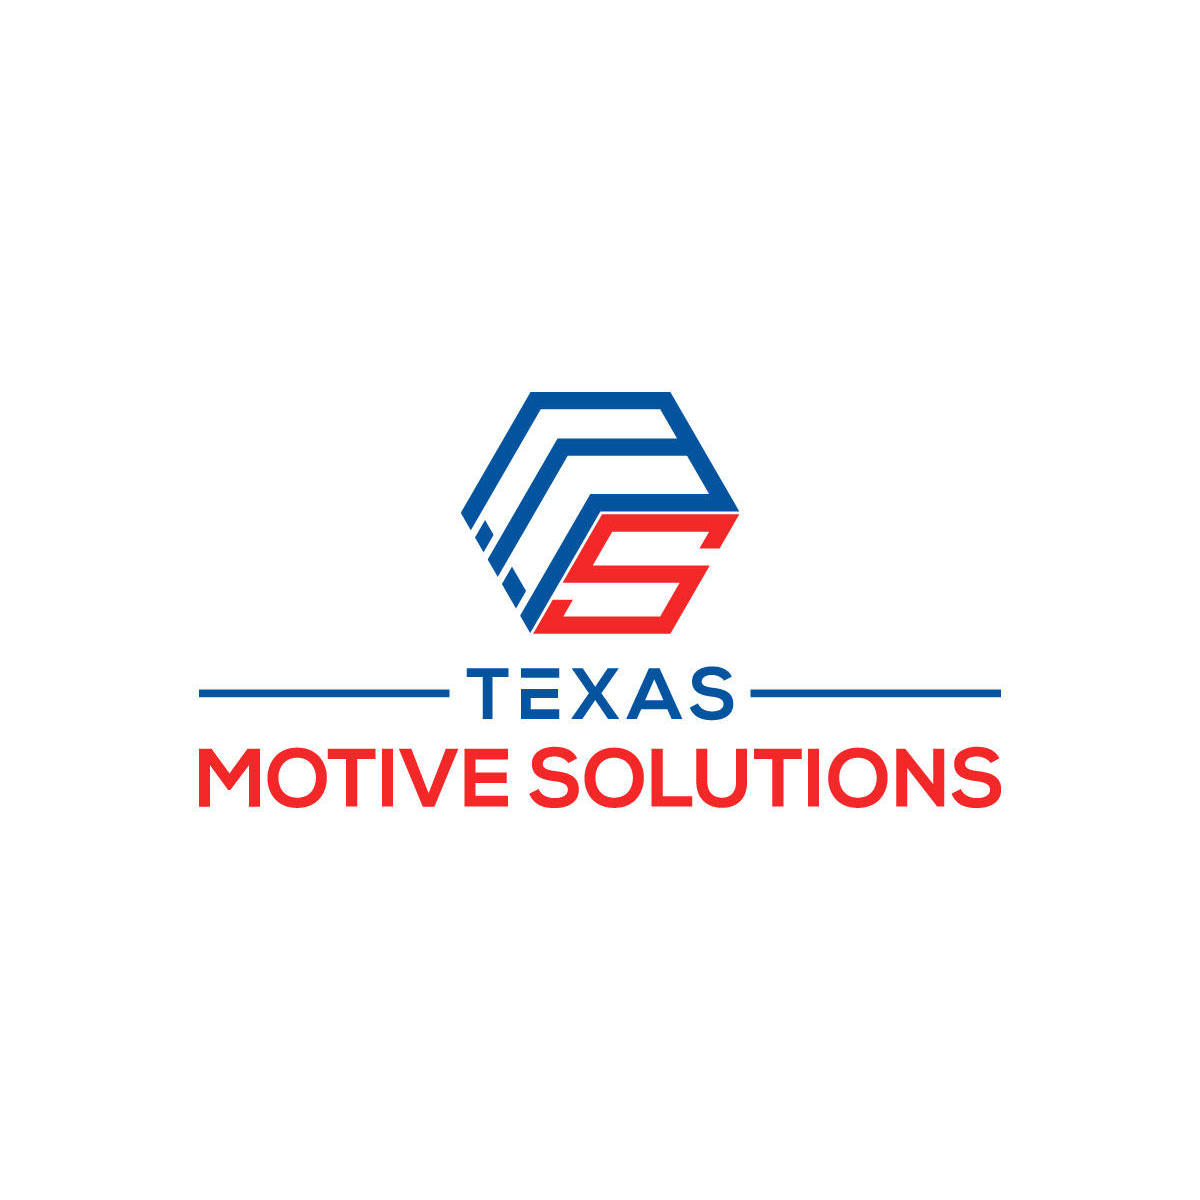 Texas Motive Solutions